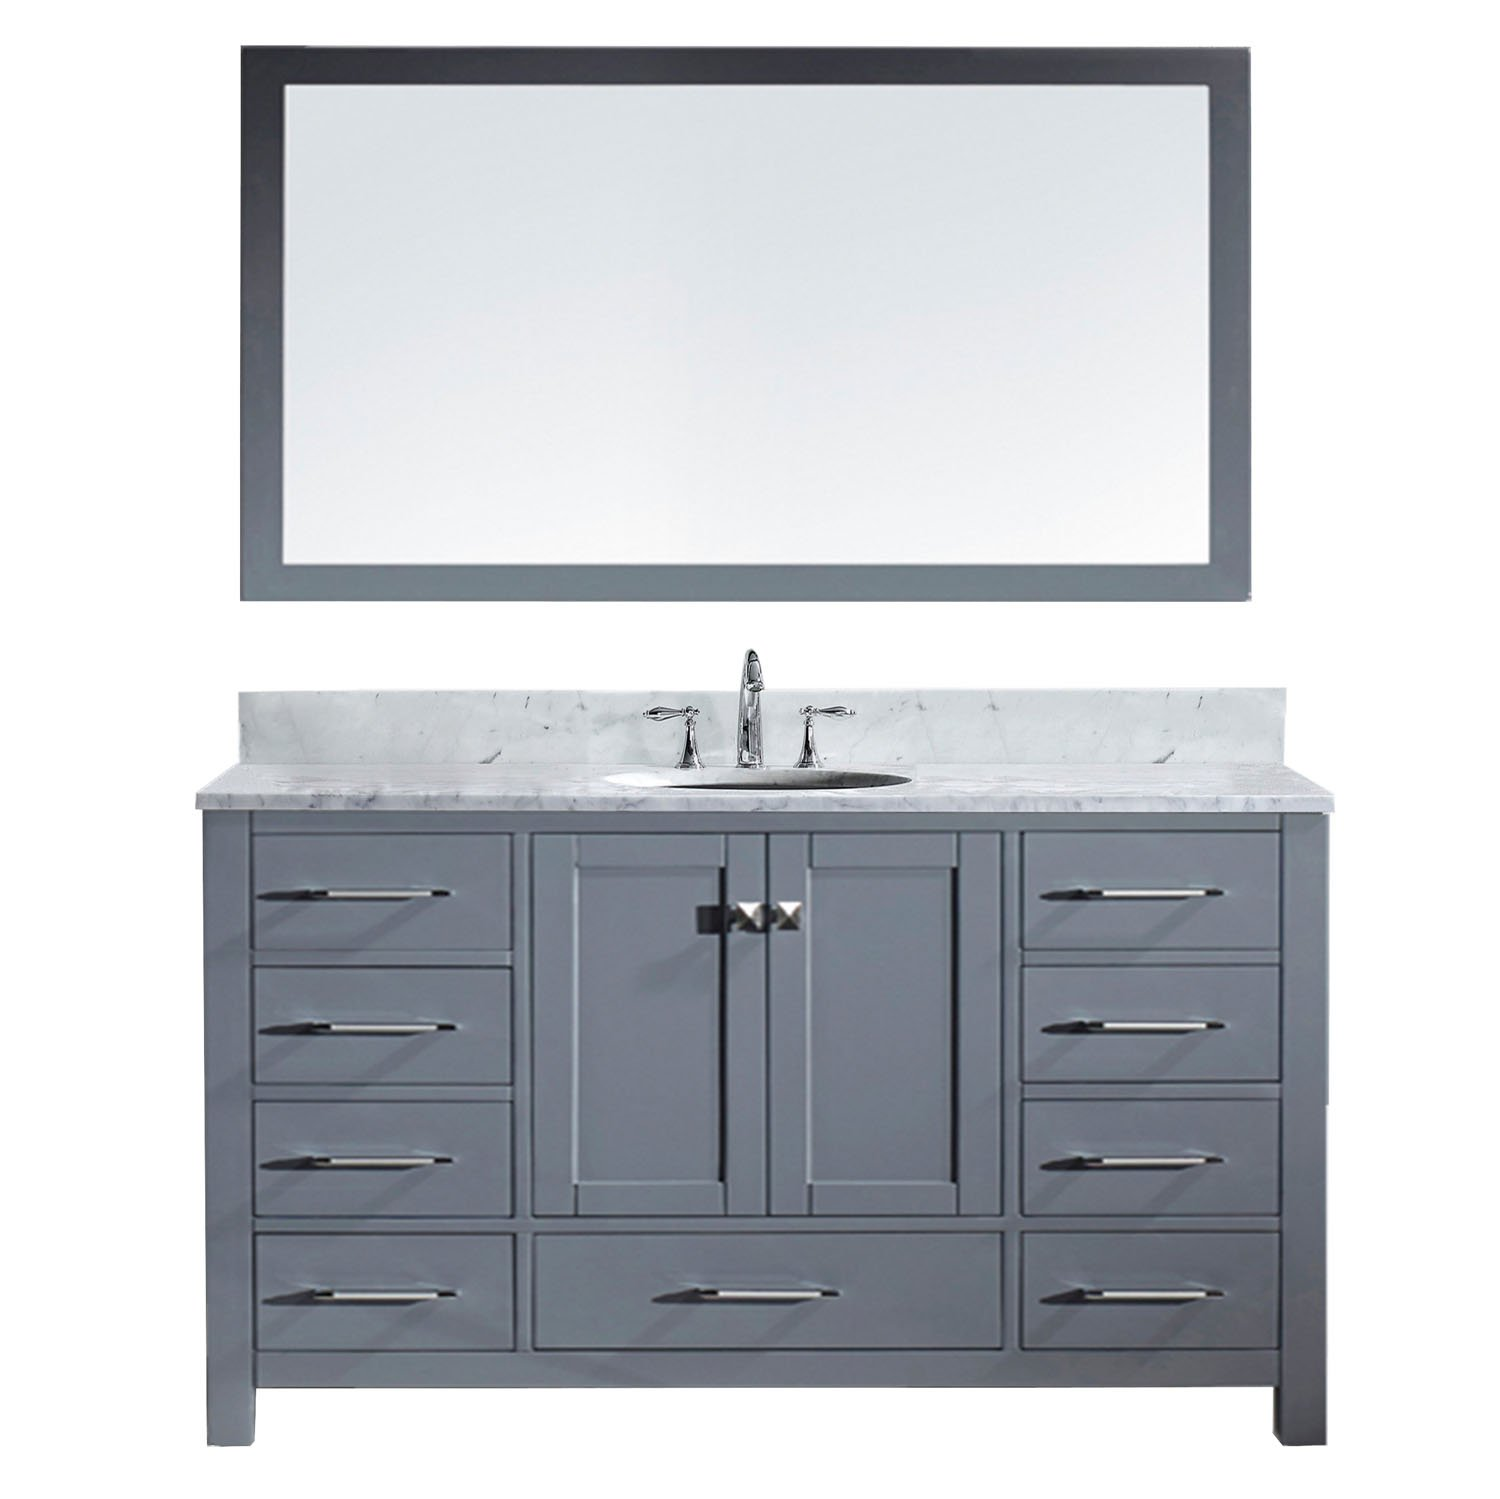 Virtu USA GS-50060-Wmro-GR Caroline Avenue Single Bathroom Vanity with Marble Top/Round Sink with Mirror, 60'', Grey